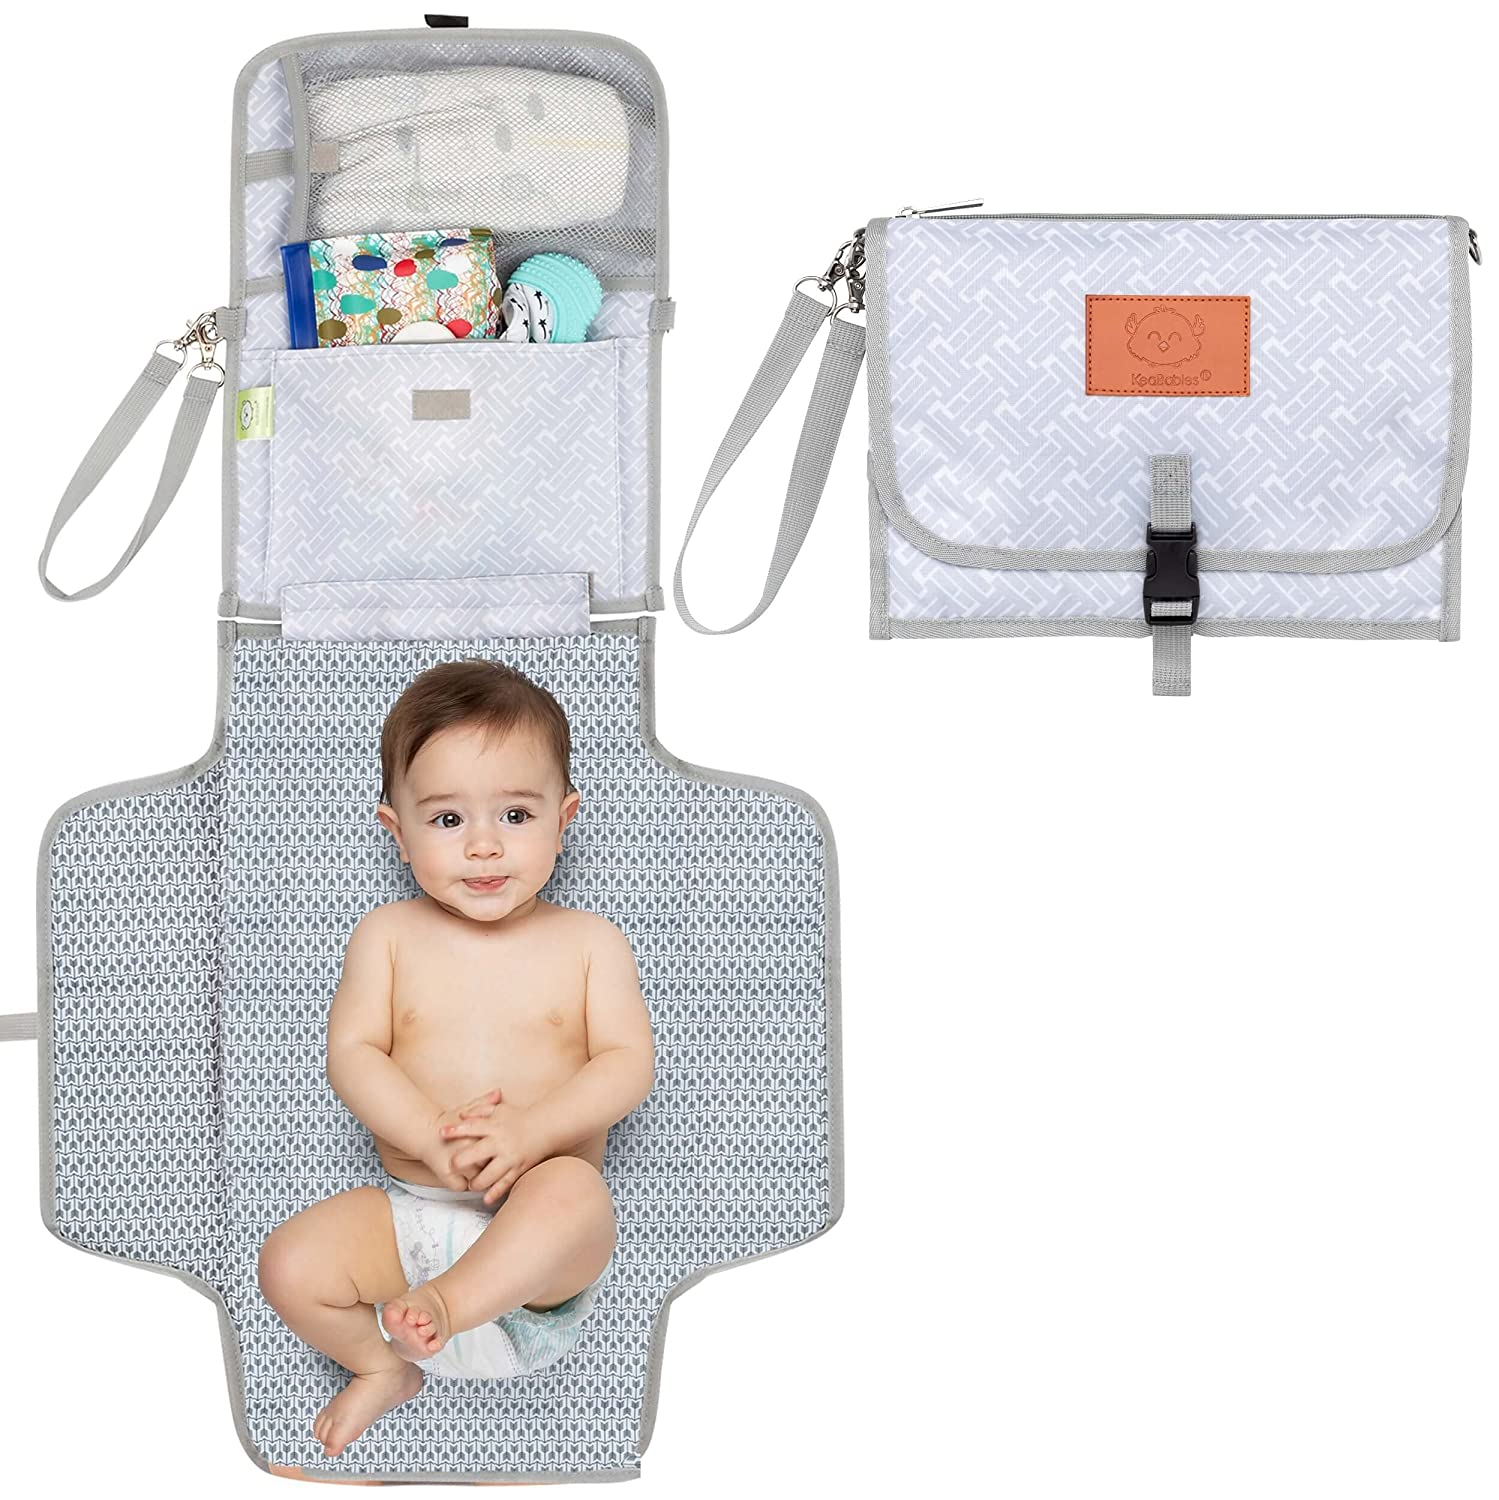 Portable Baby Diaper Changing Pad - Waterproof Diaper Changing Mat - Folding Diaper Changing Station - Travel Diaper Change Pads - Changing Clutch - Detachable Stroller Hooks (Gray Mod)